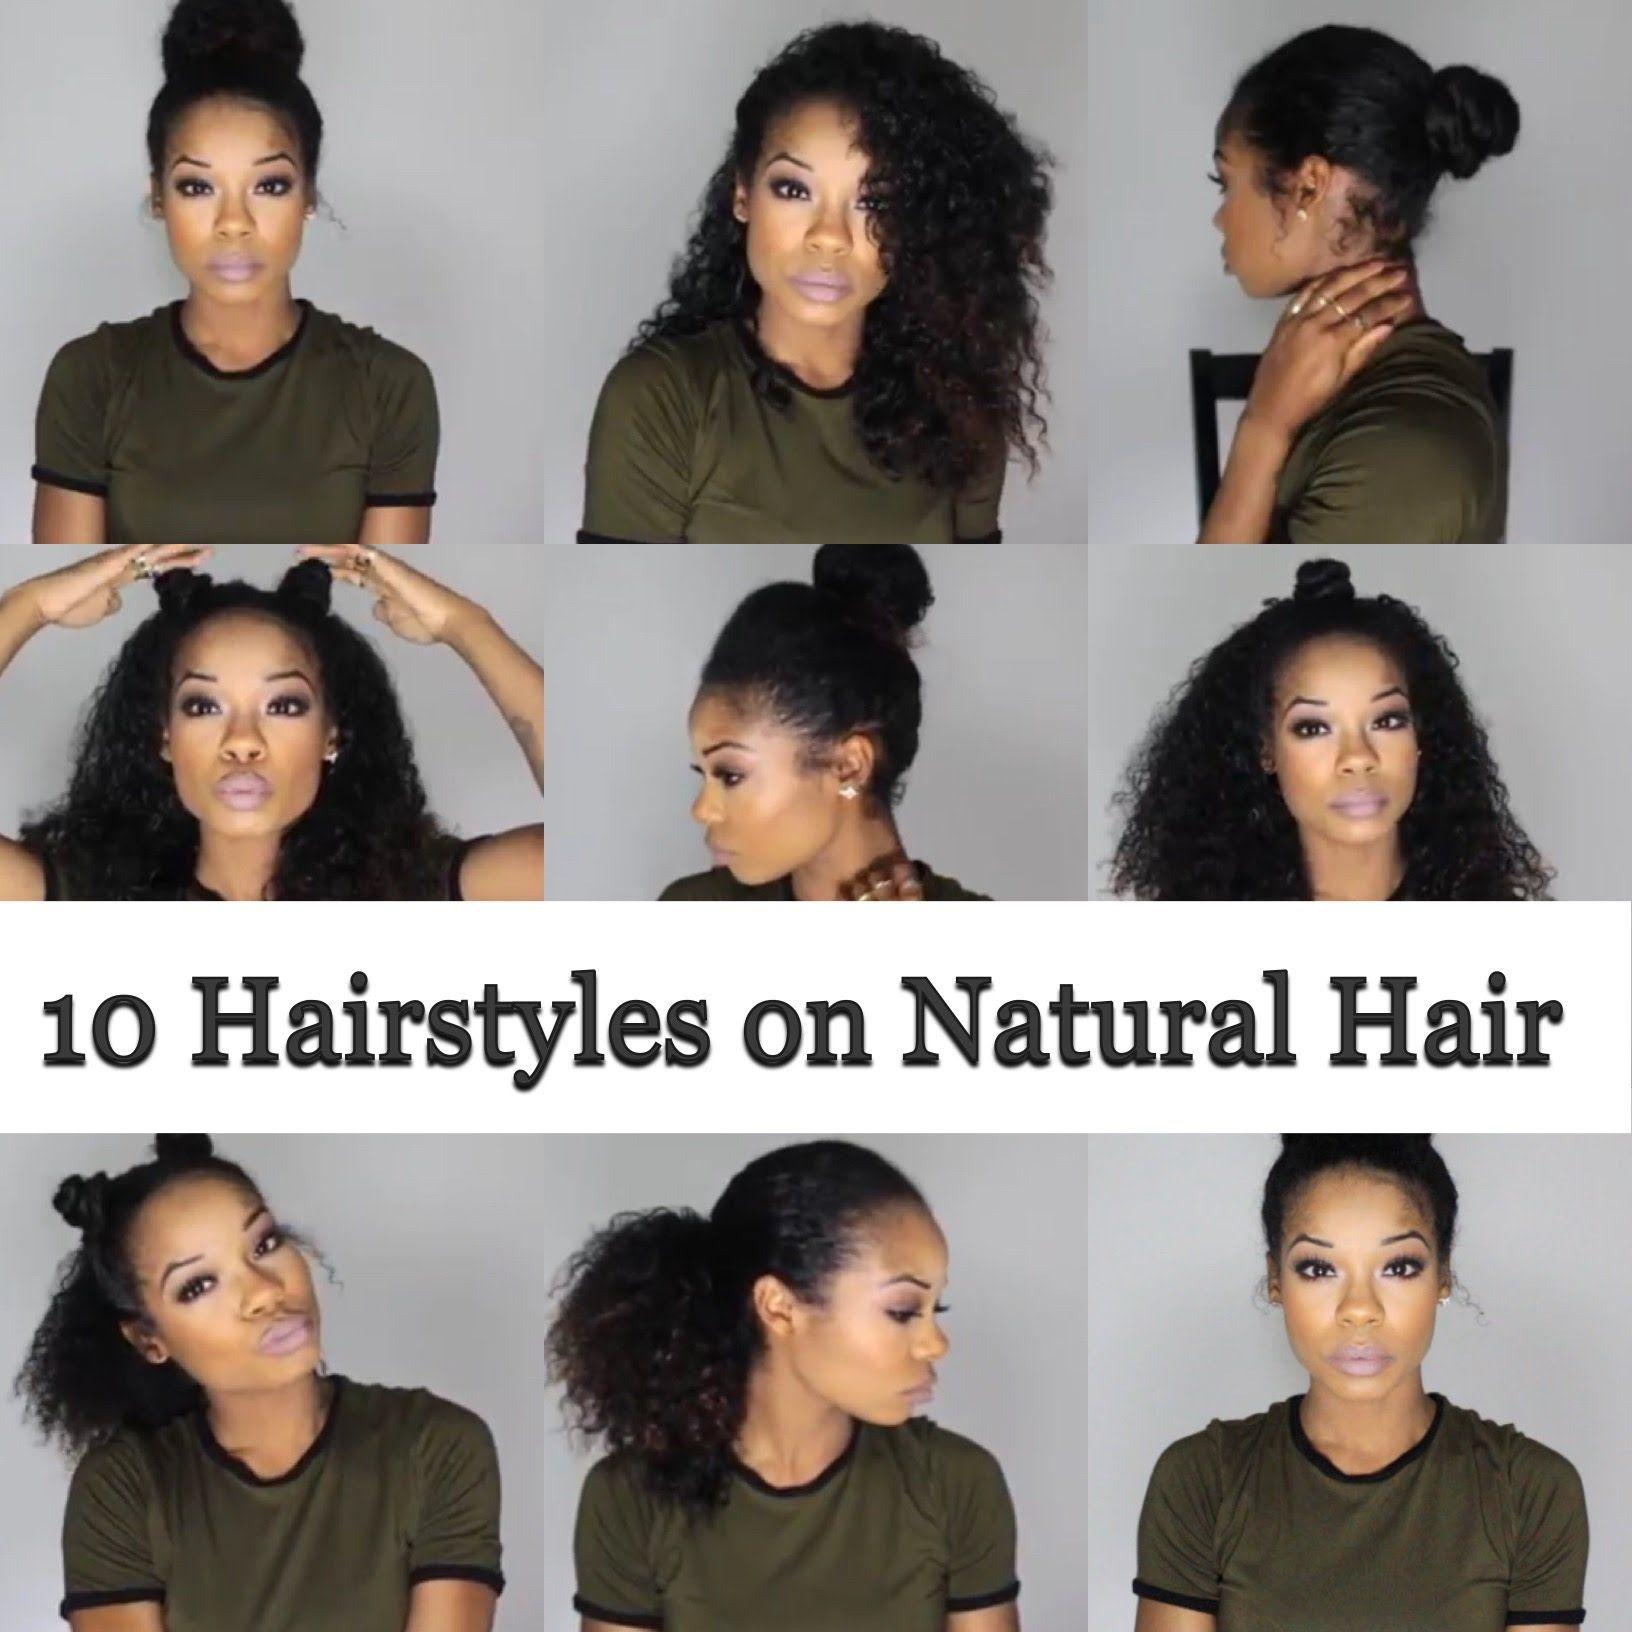 10 Quick And Easy Hairstyles On Natural Hair 3b 3c With Images